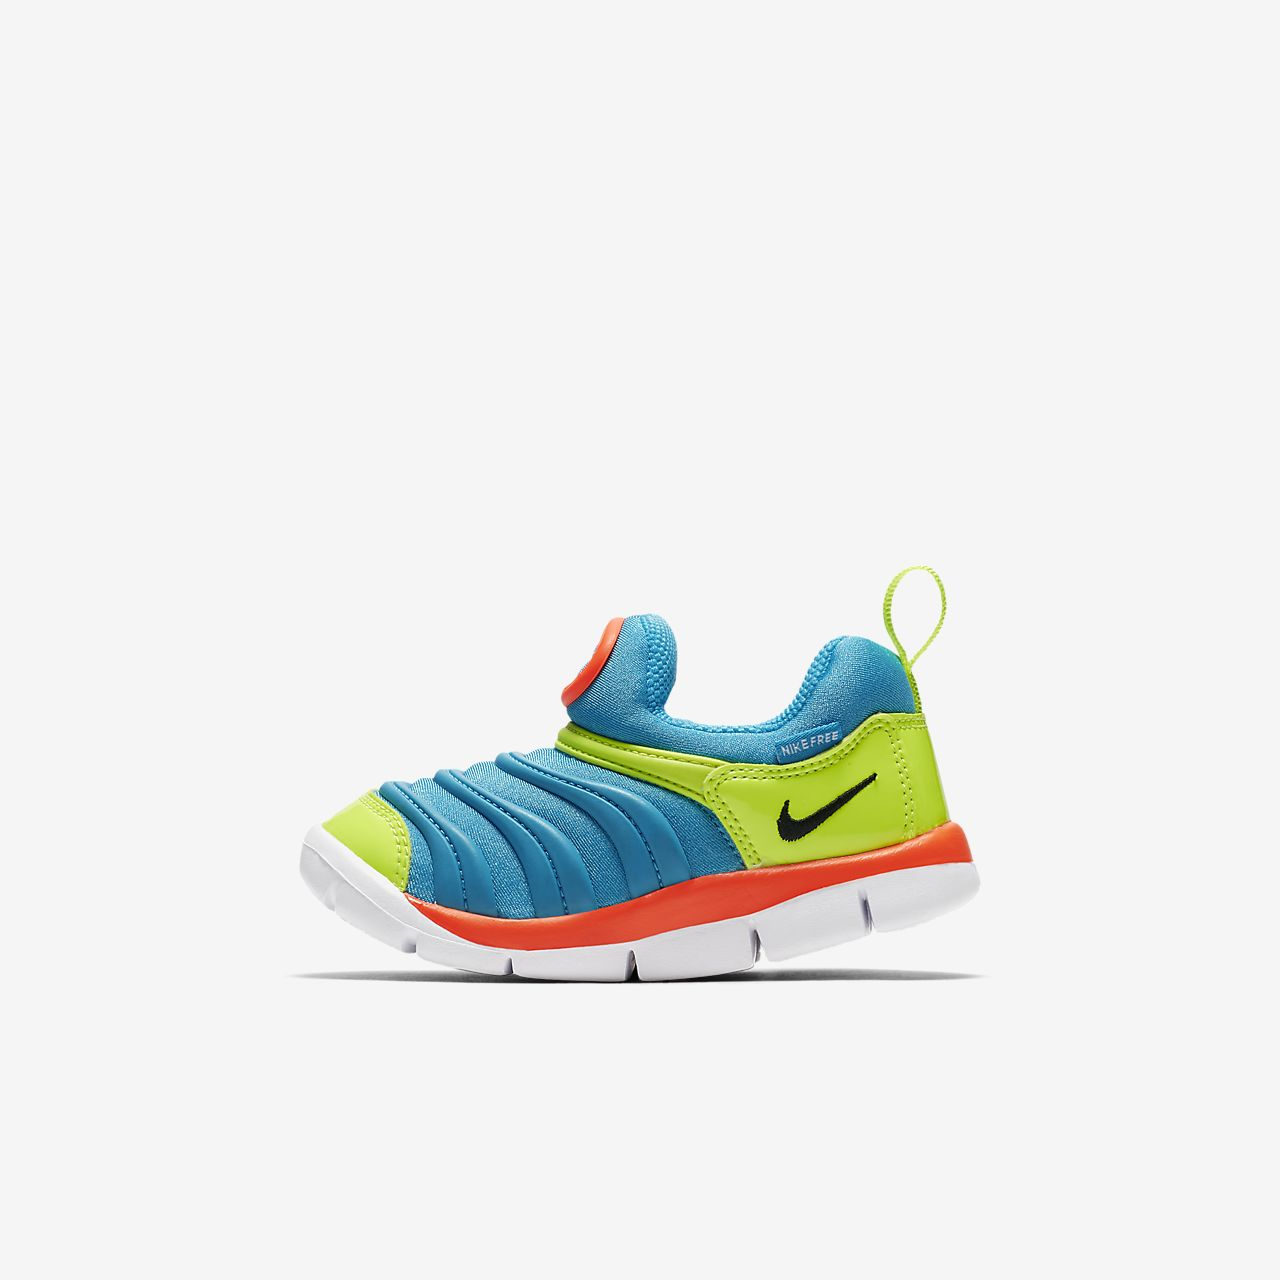 nike shoes infant /toddler playground designs free 921729